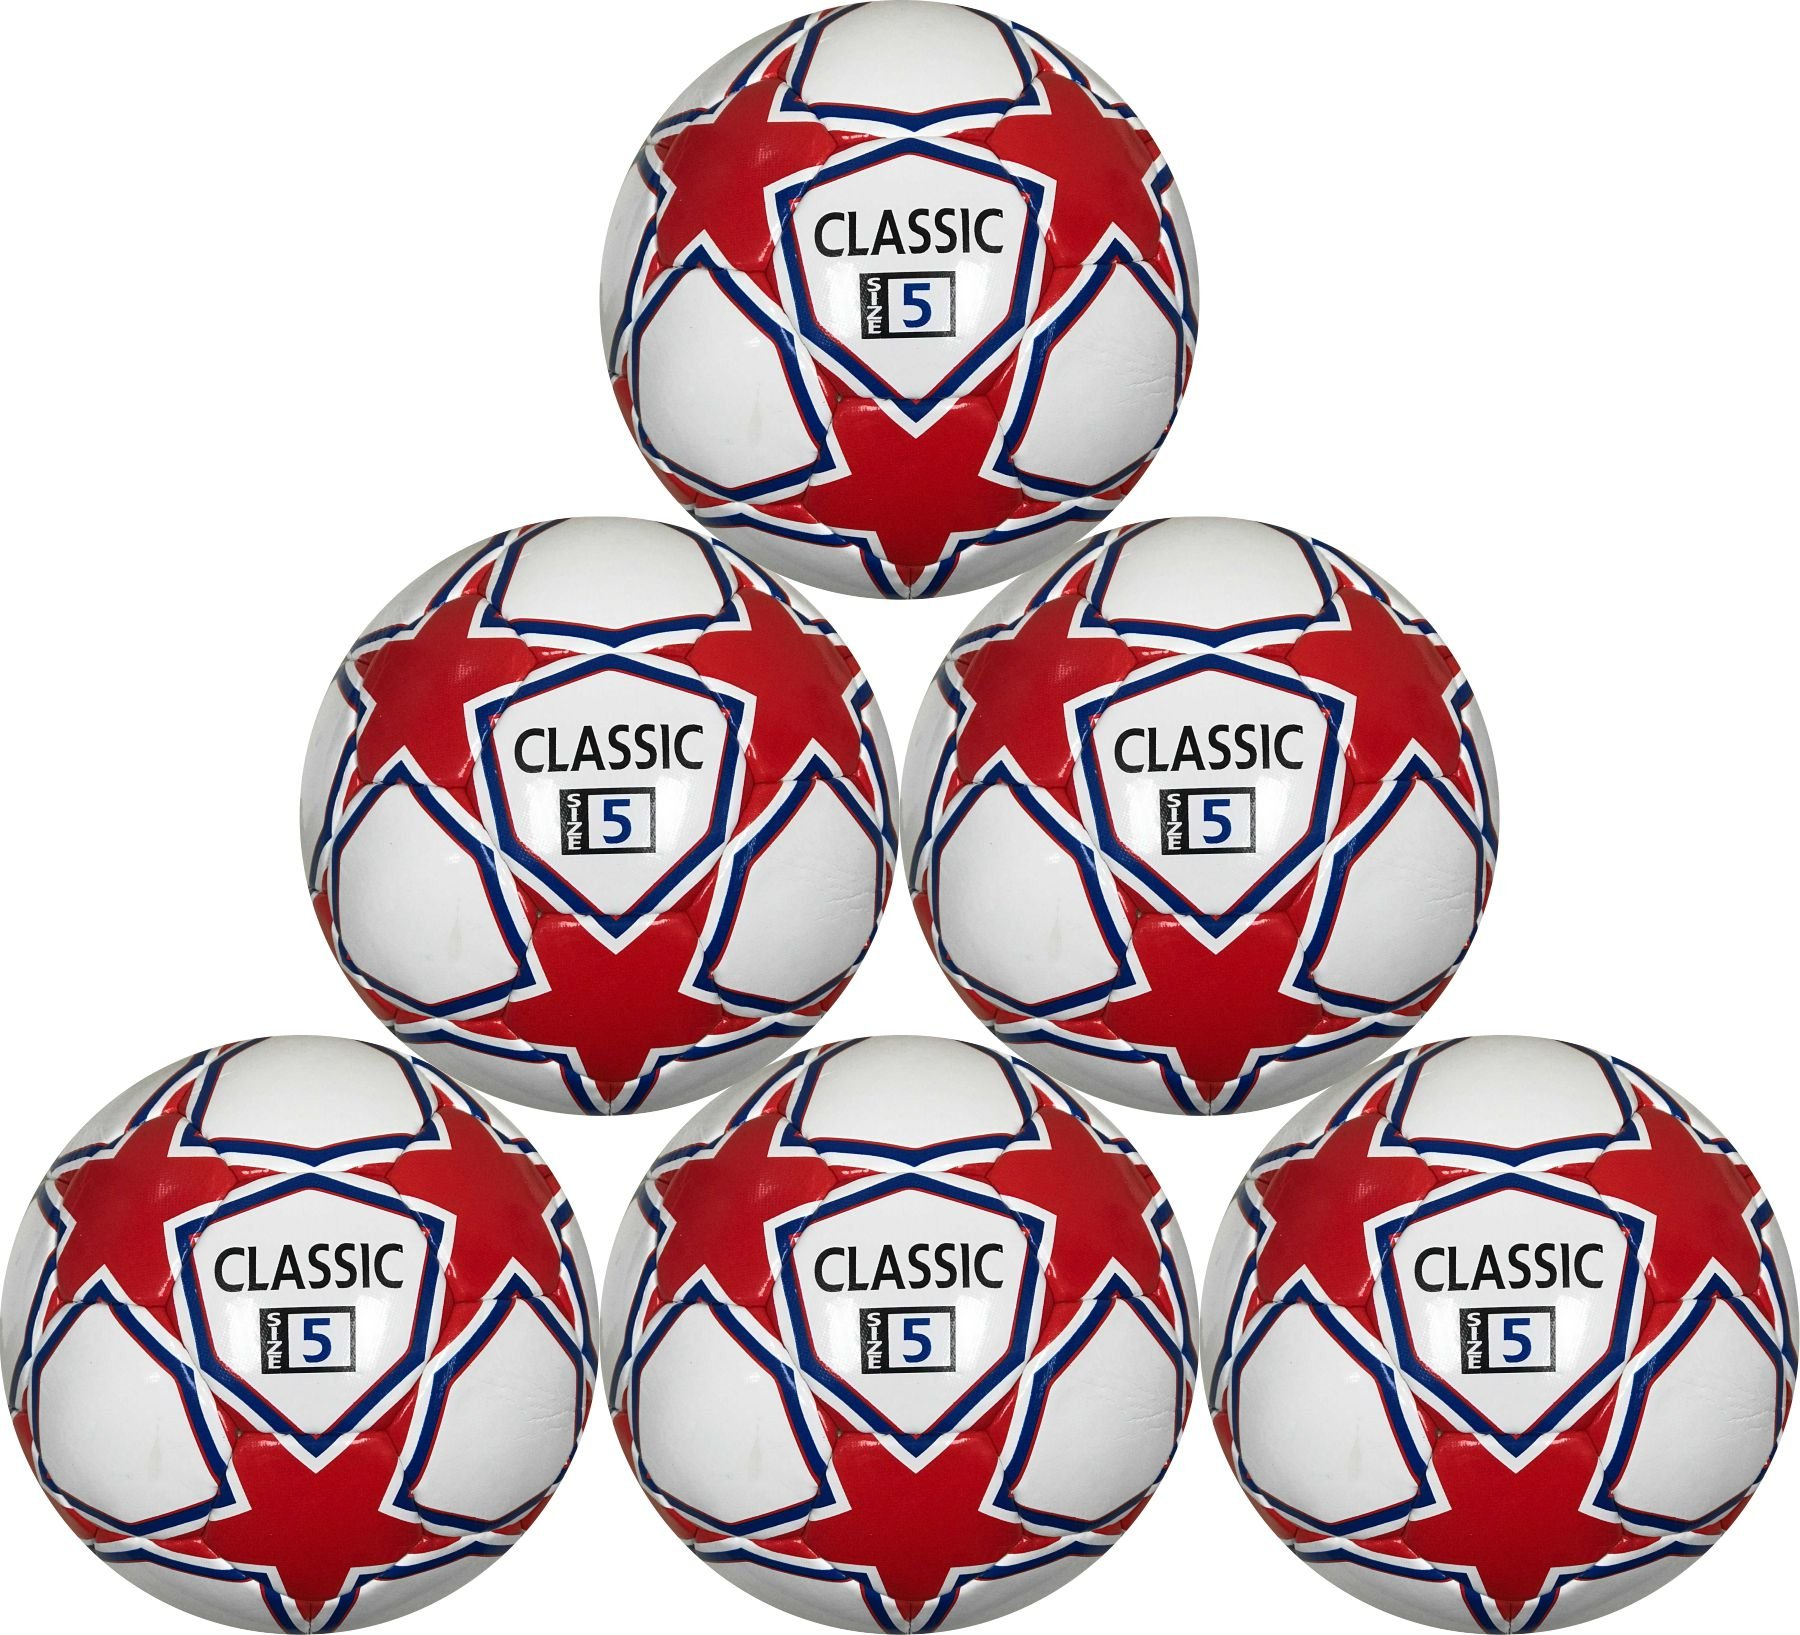 Classic Soccer Balls Match Level High End Six Pack White Red and Blue 32 Panel Size 5